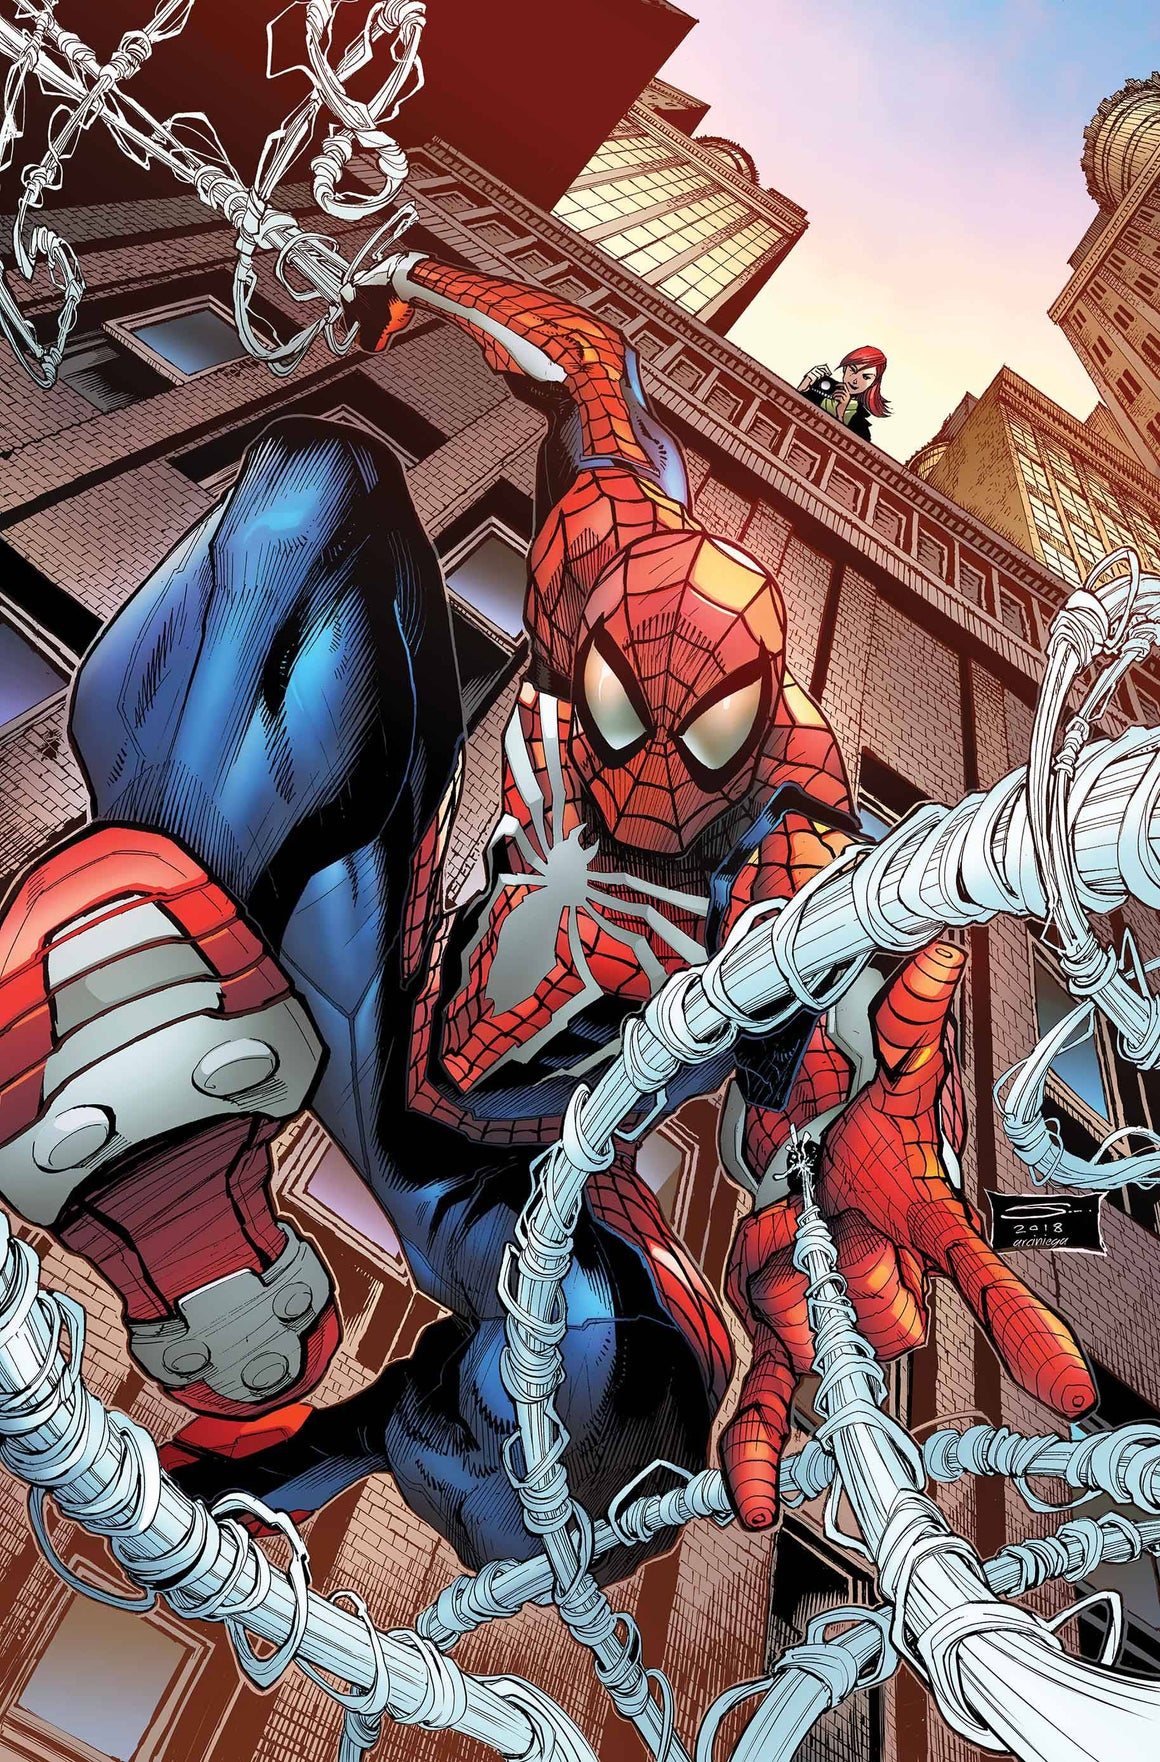 SPIDER-MAN CITY AT WAR #1 (OF 6) SANDOVAL VARIANT